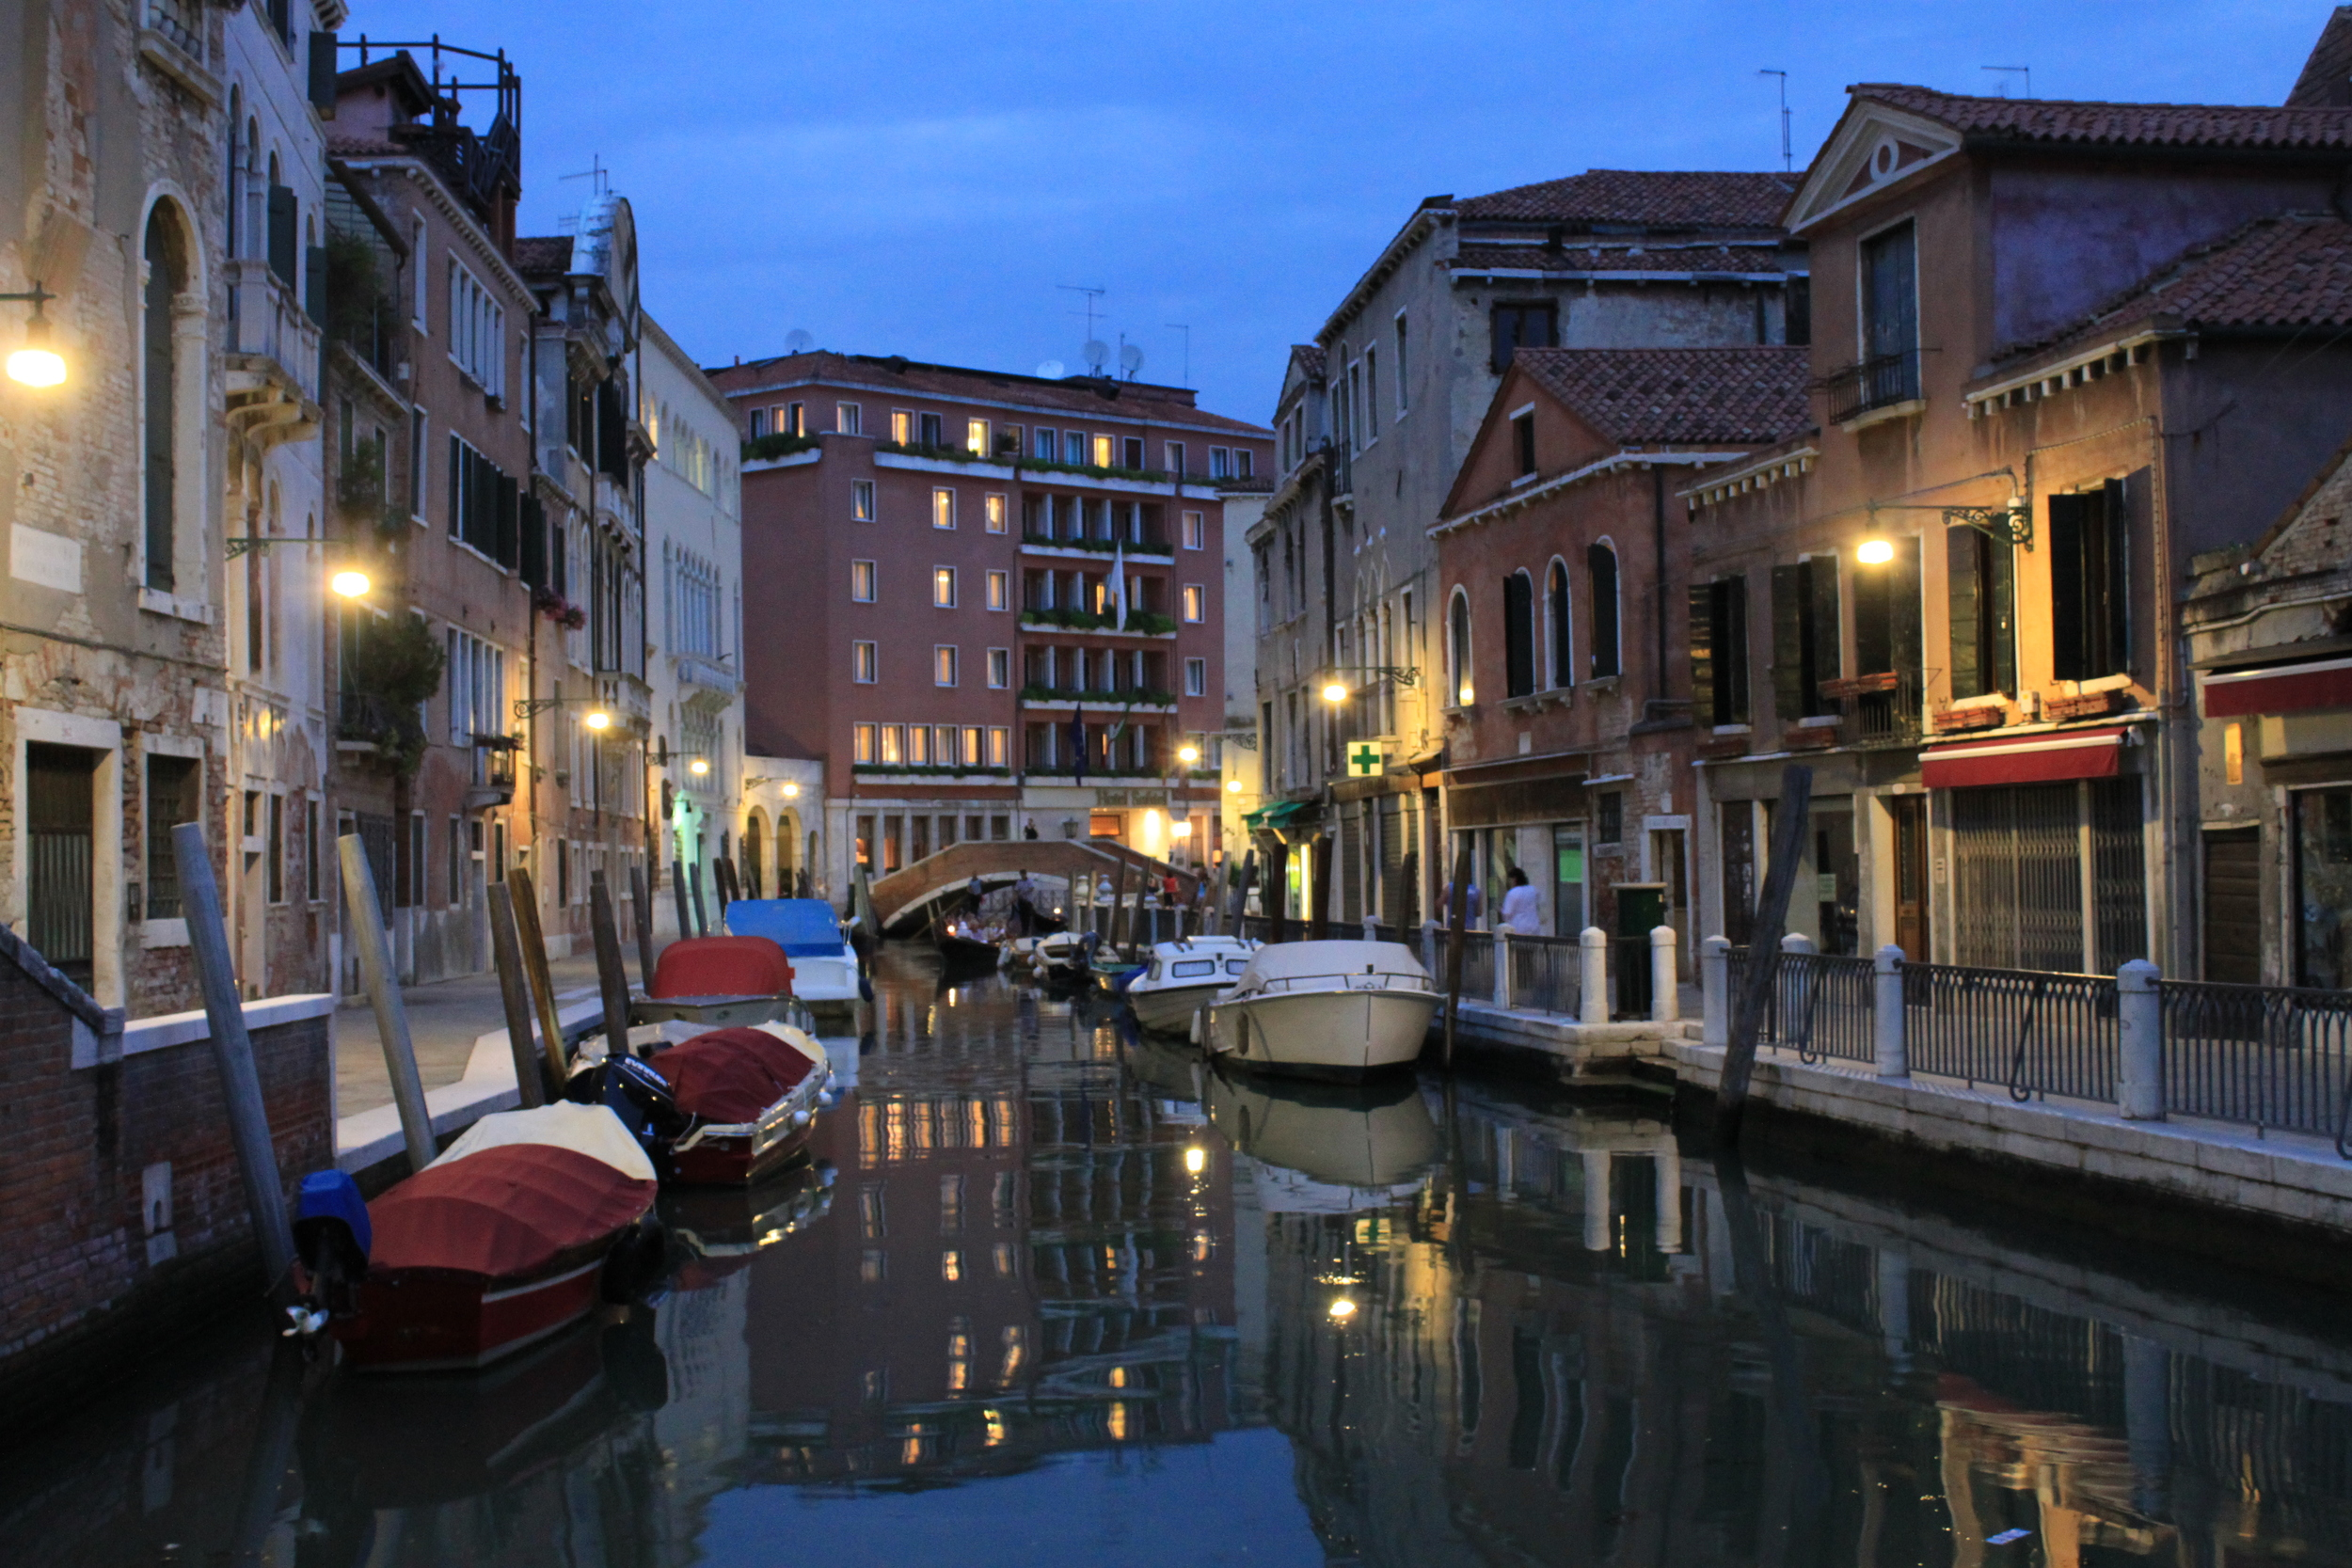 venice-canals_5053093872_o.jpg